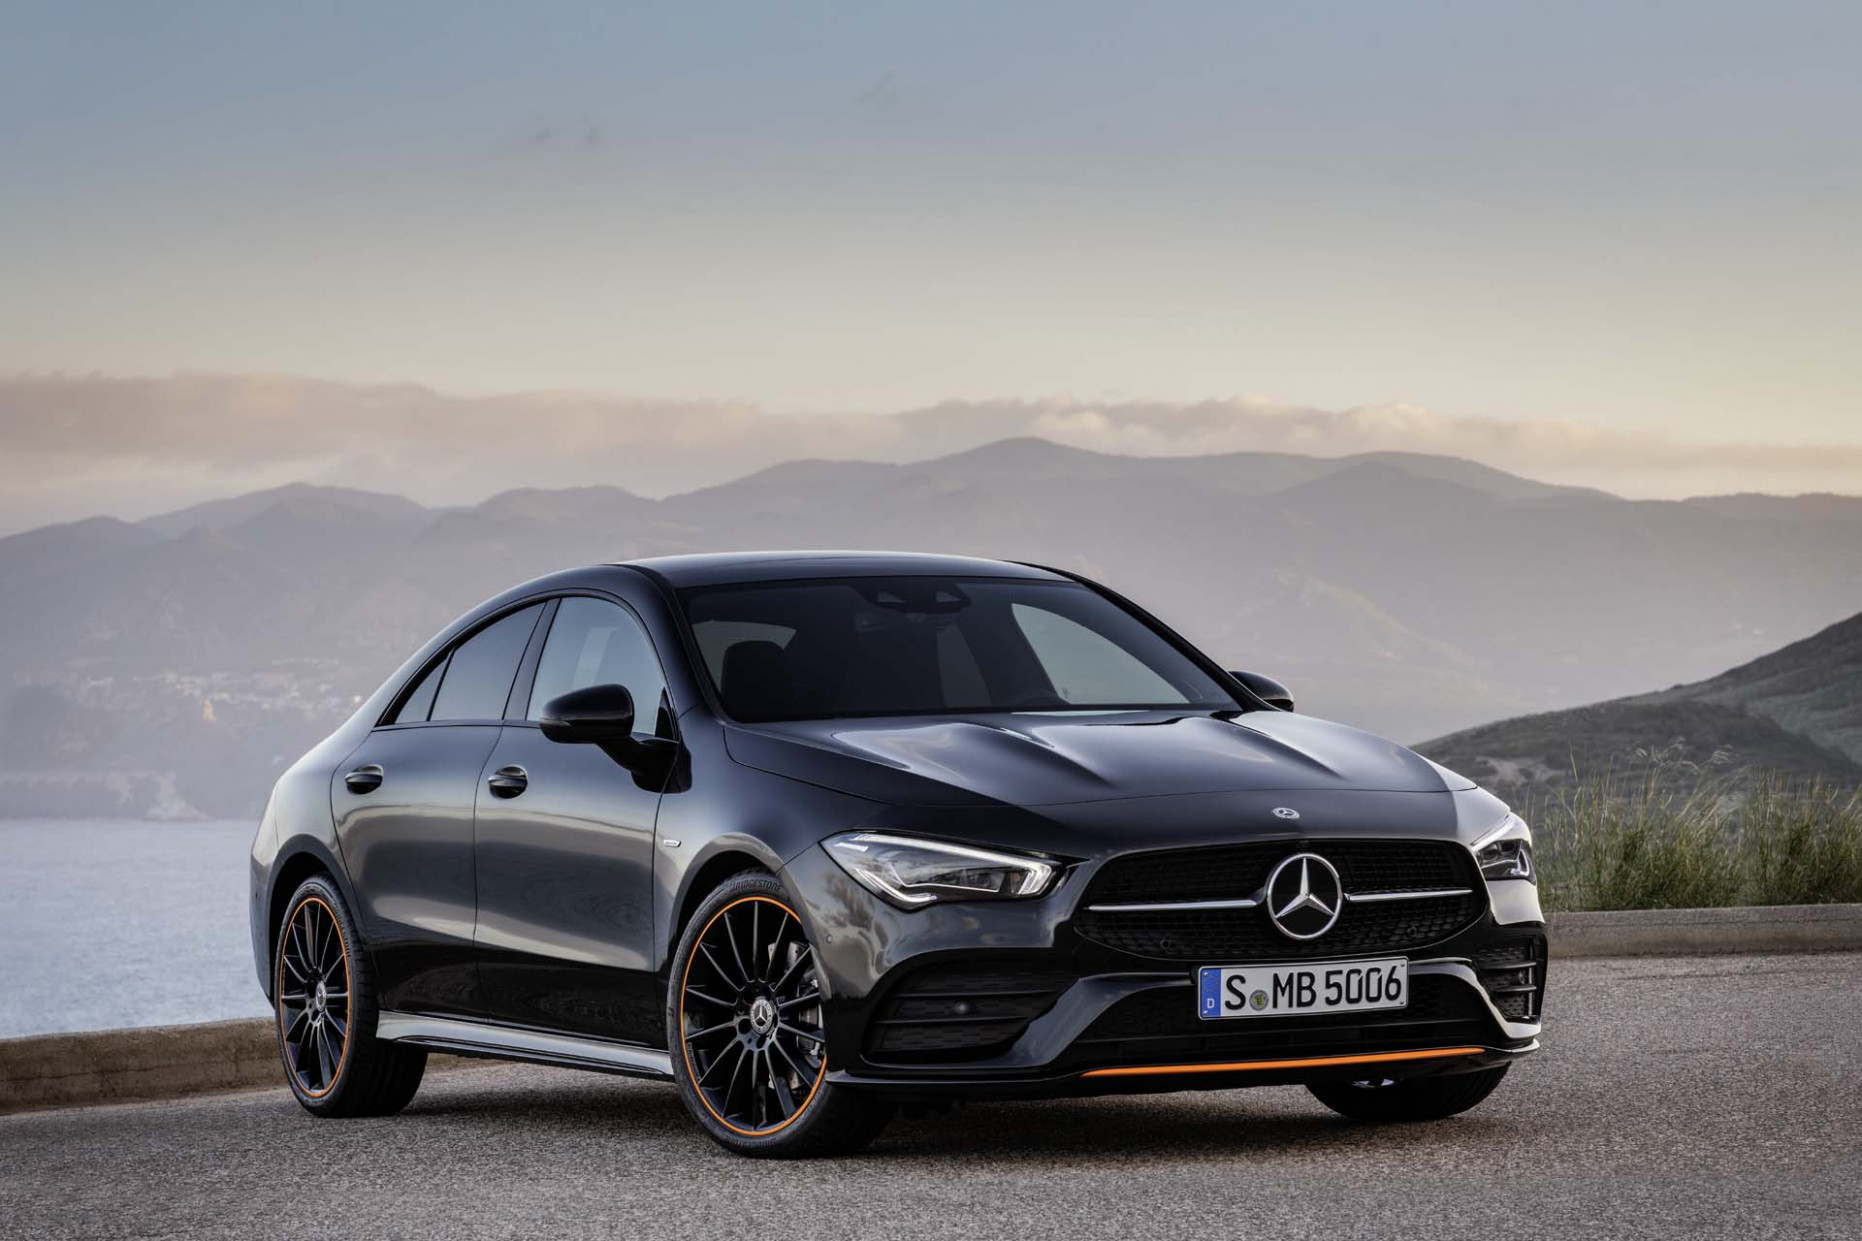 8 Mercedes-Benz CLA Class Review, Ratings, Specs, Prices, and ...